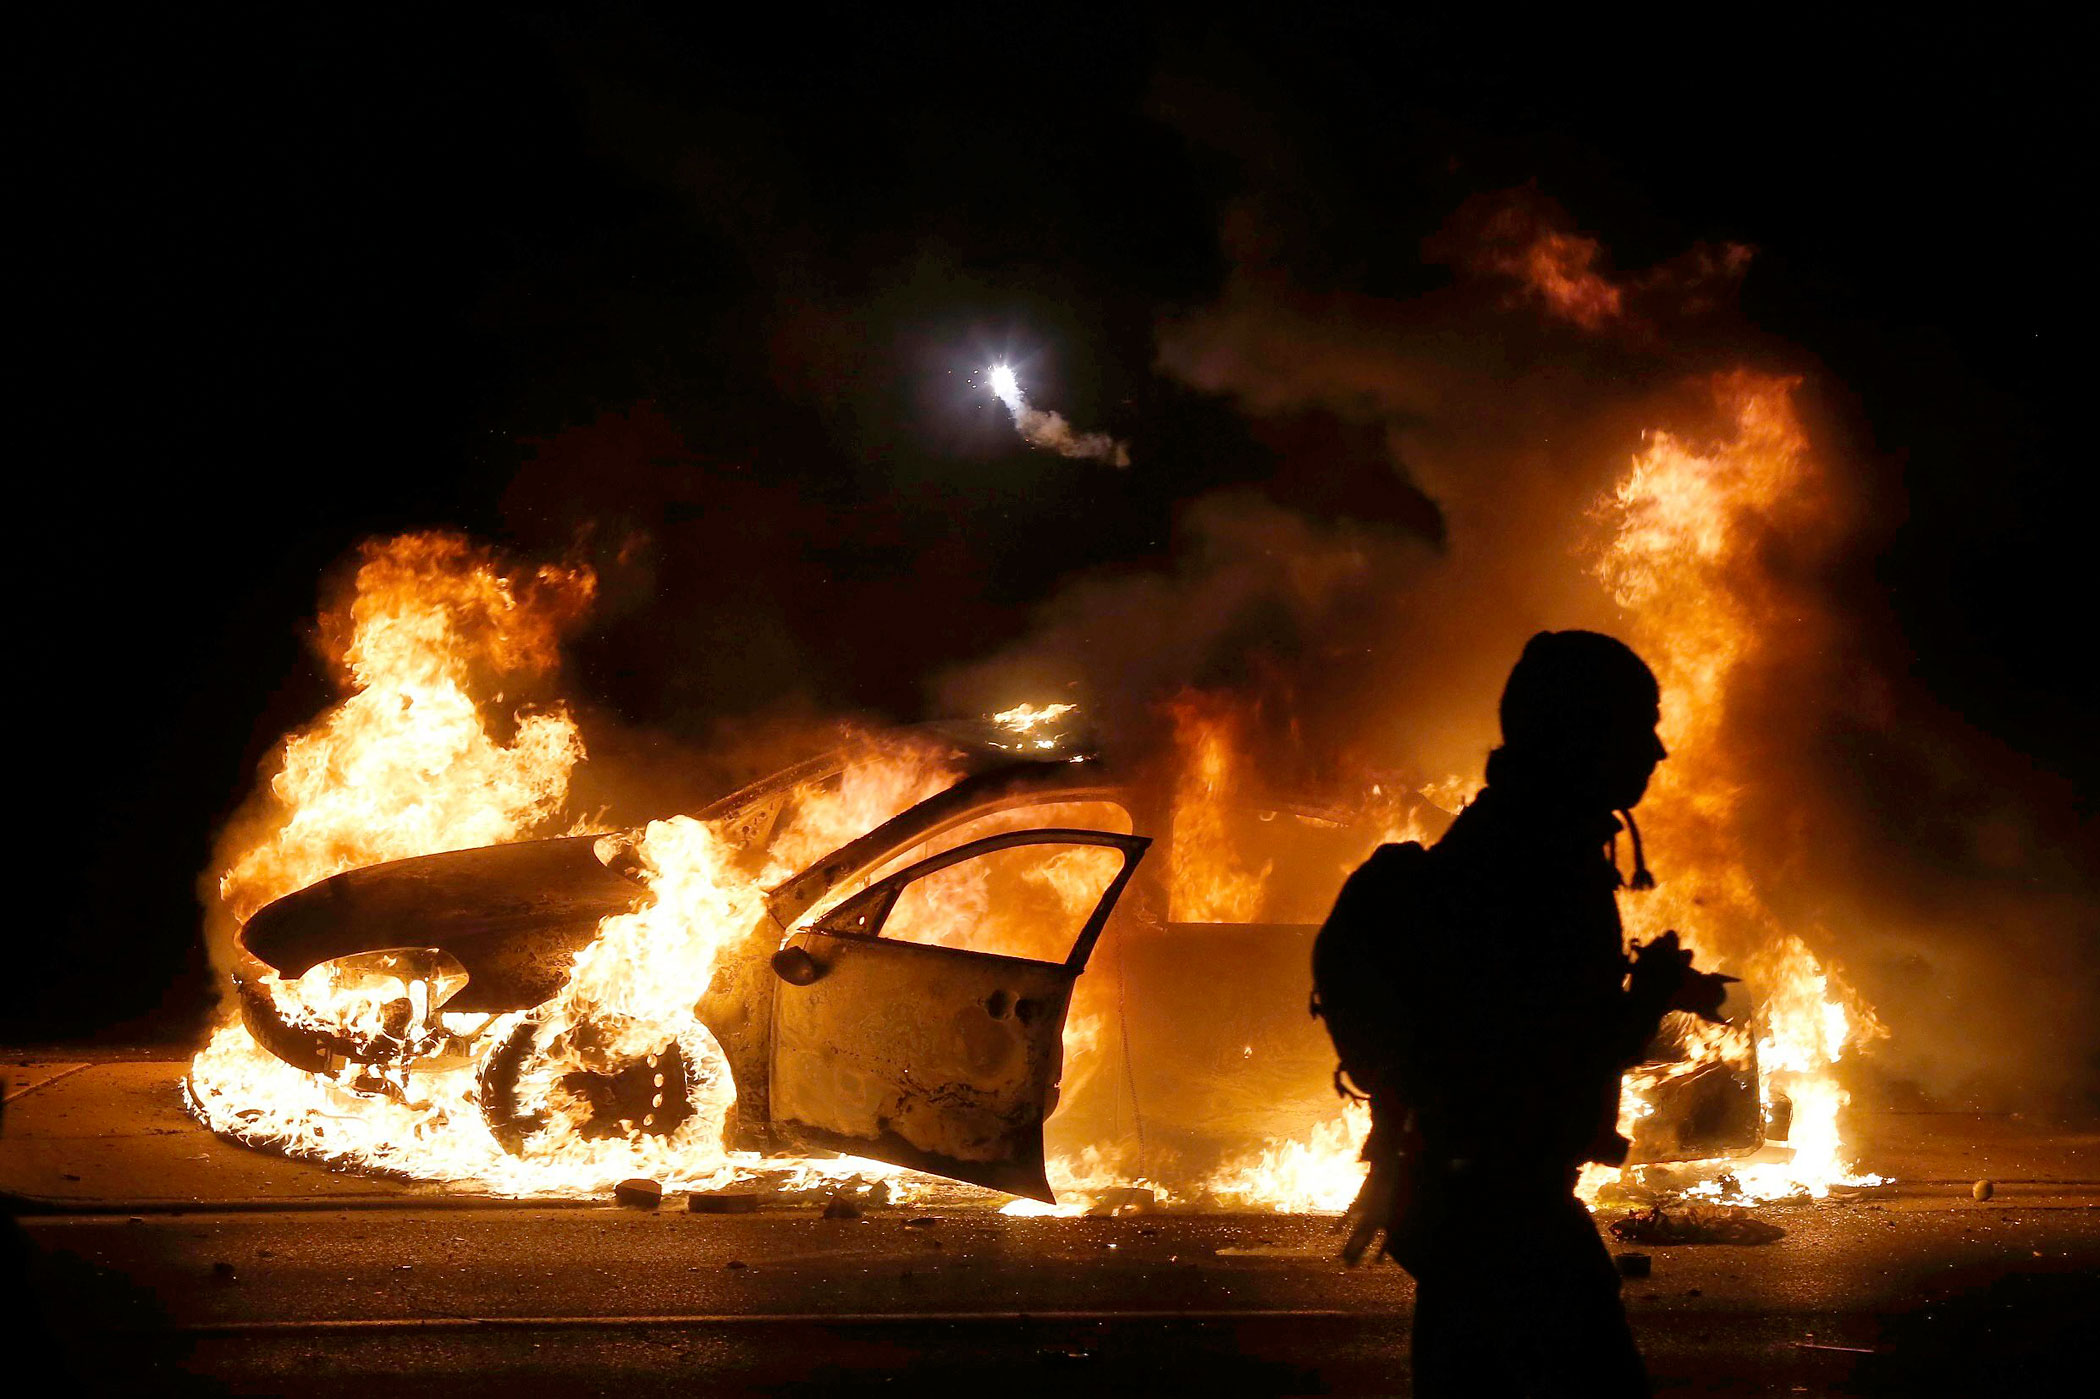 A police car burns on the street after a grand jury returned no indictment in the shooting of Michael Brown in Ferguson, Missouri November 24, 2014.